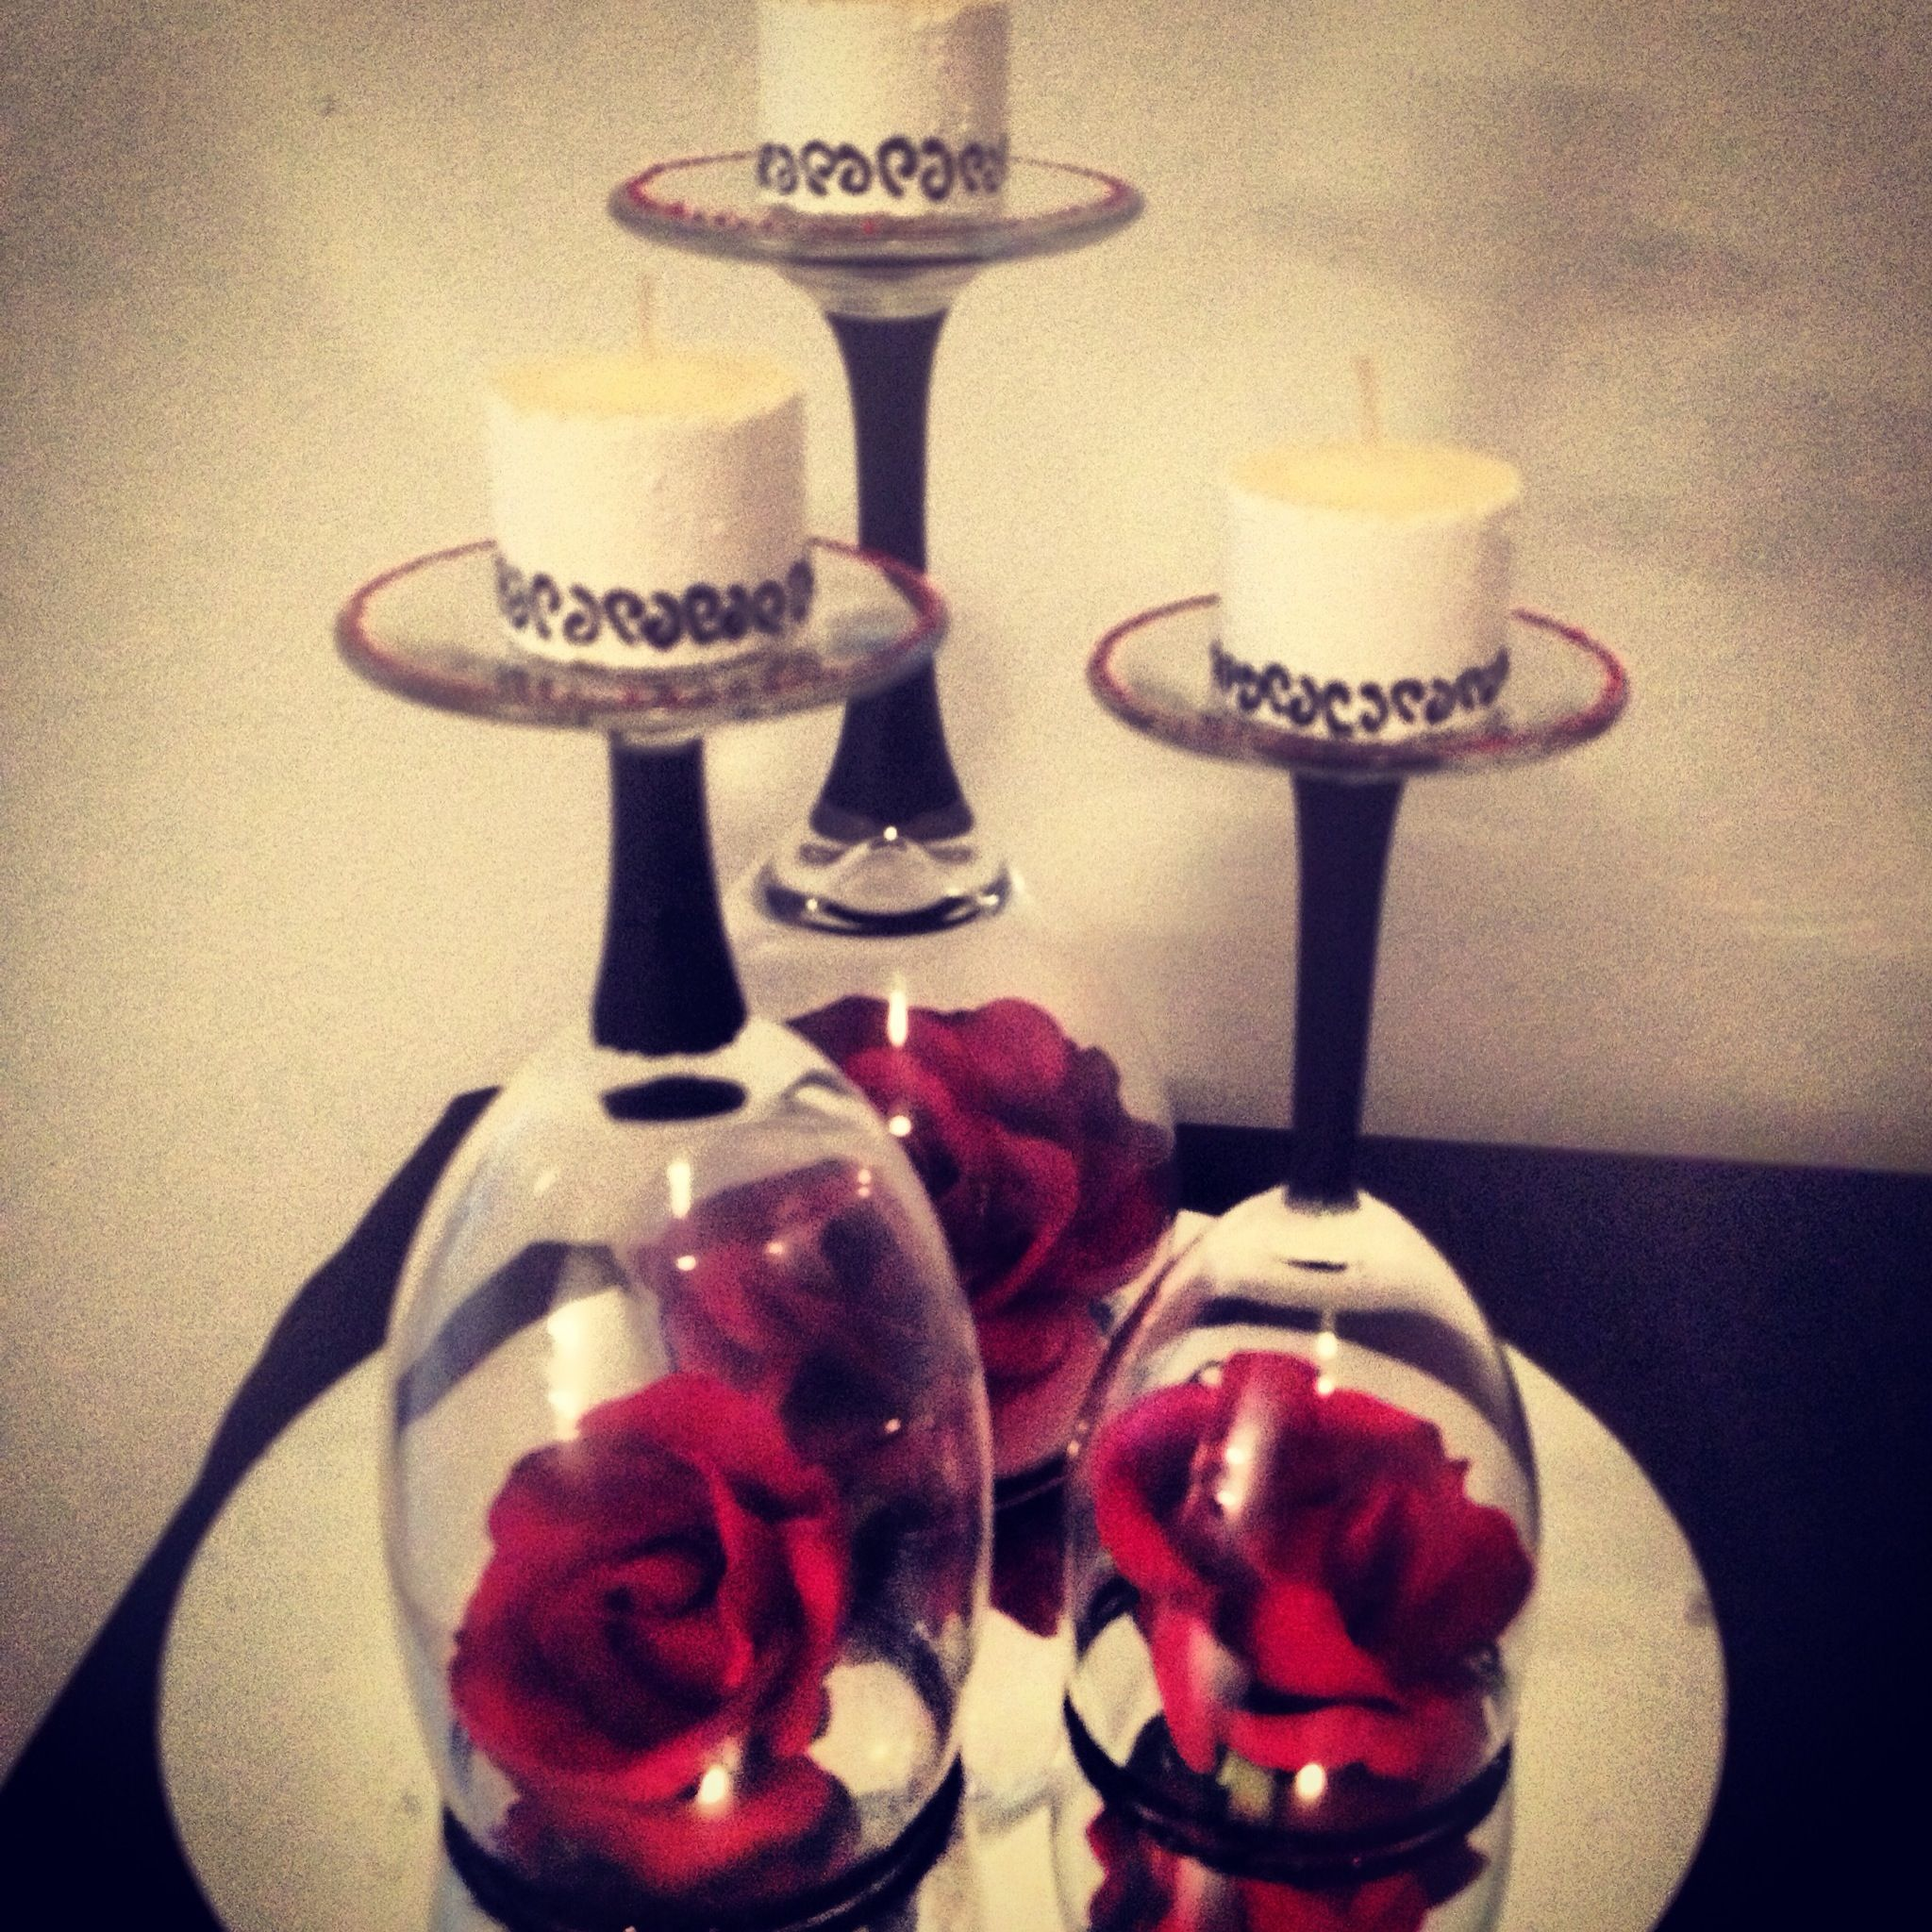 Pin By Xoxo On Diy Red And White Weddings Black Red Wedding